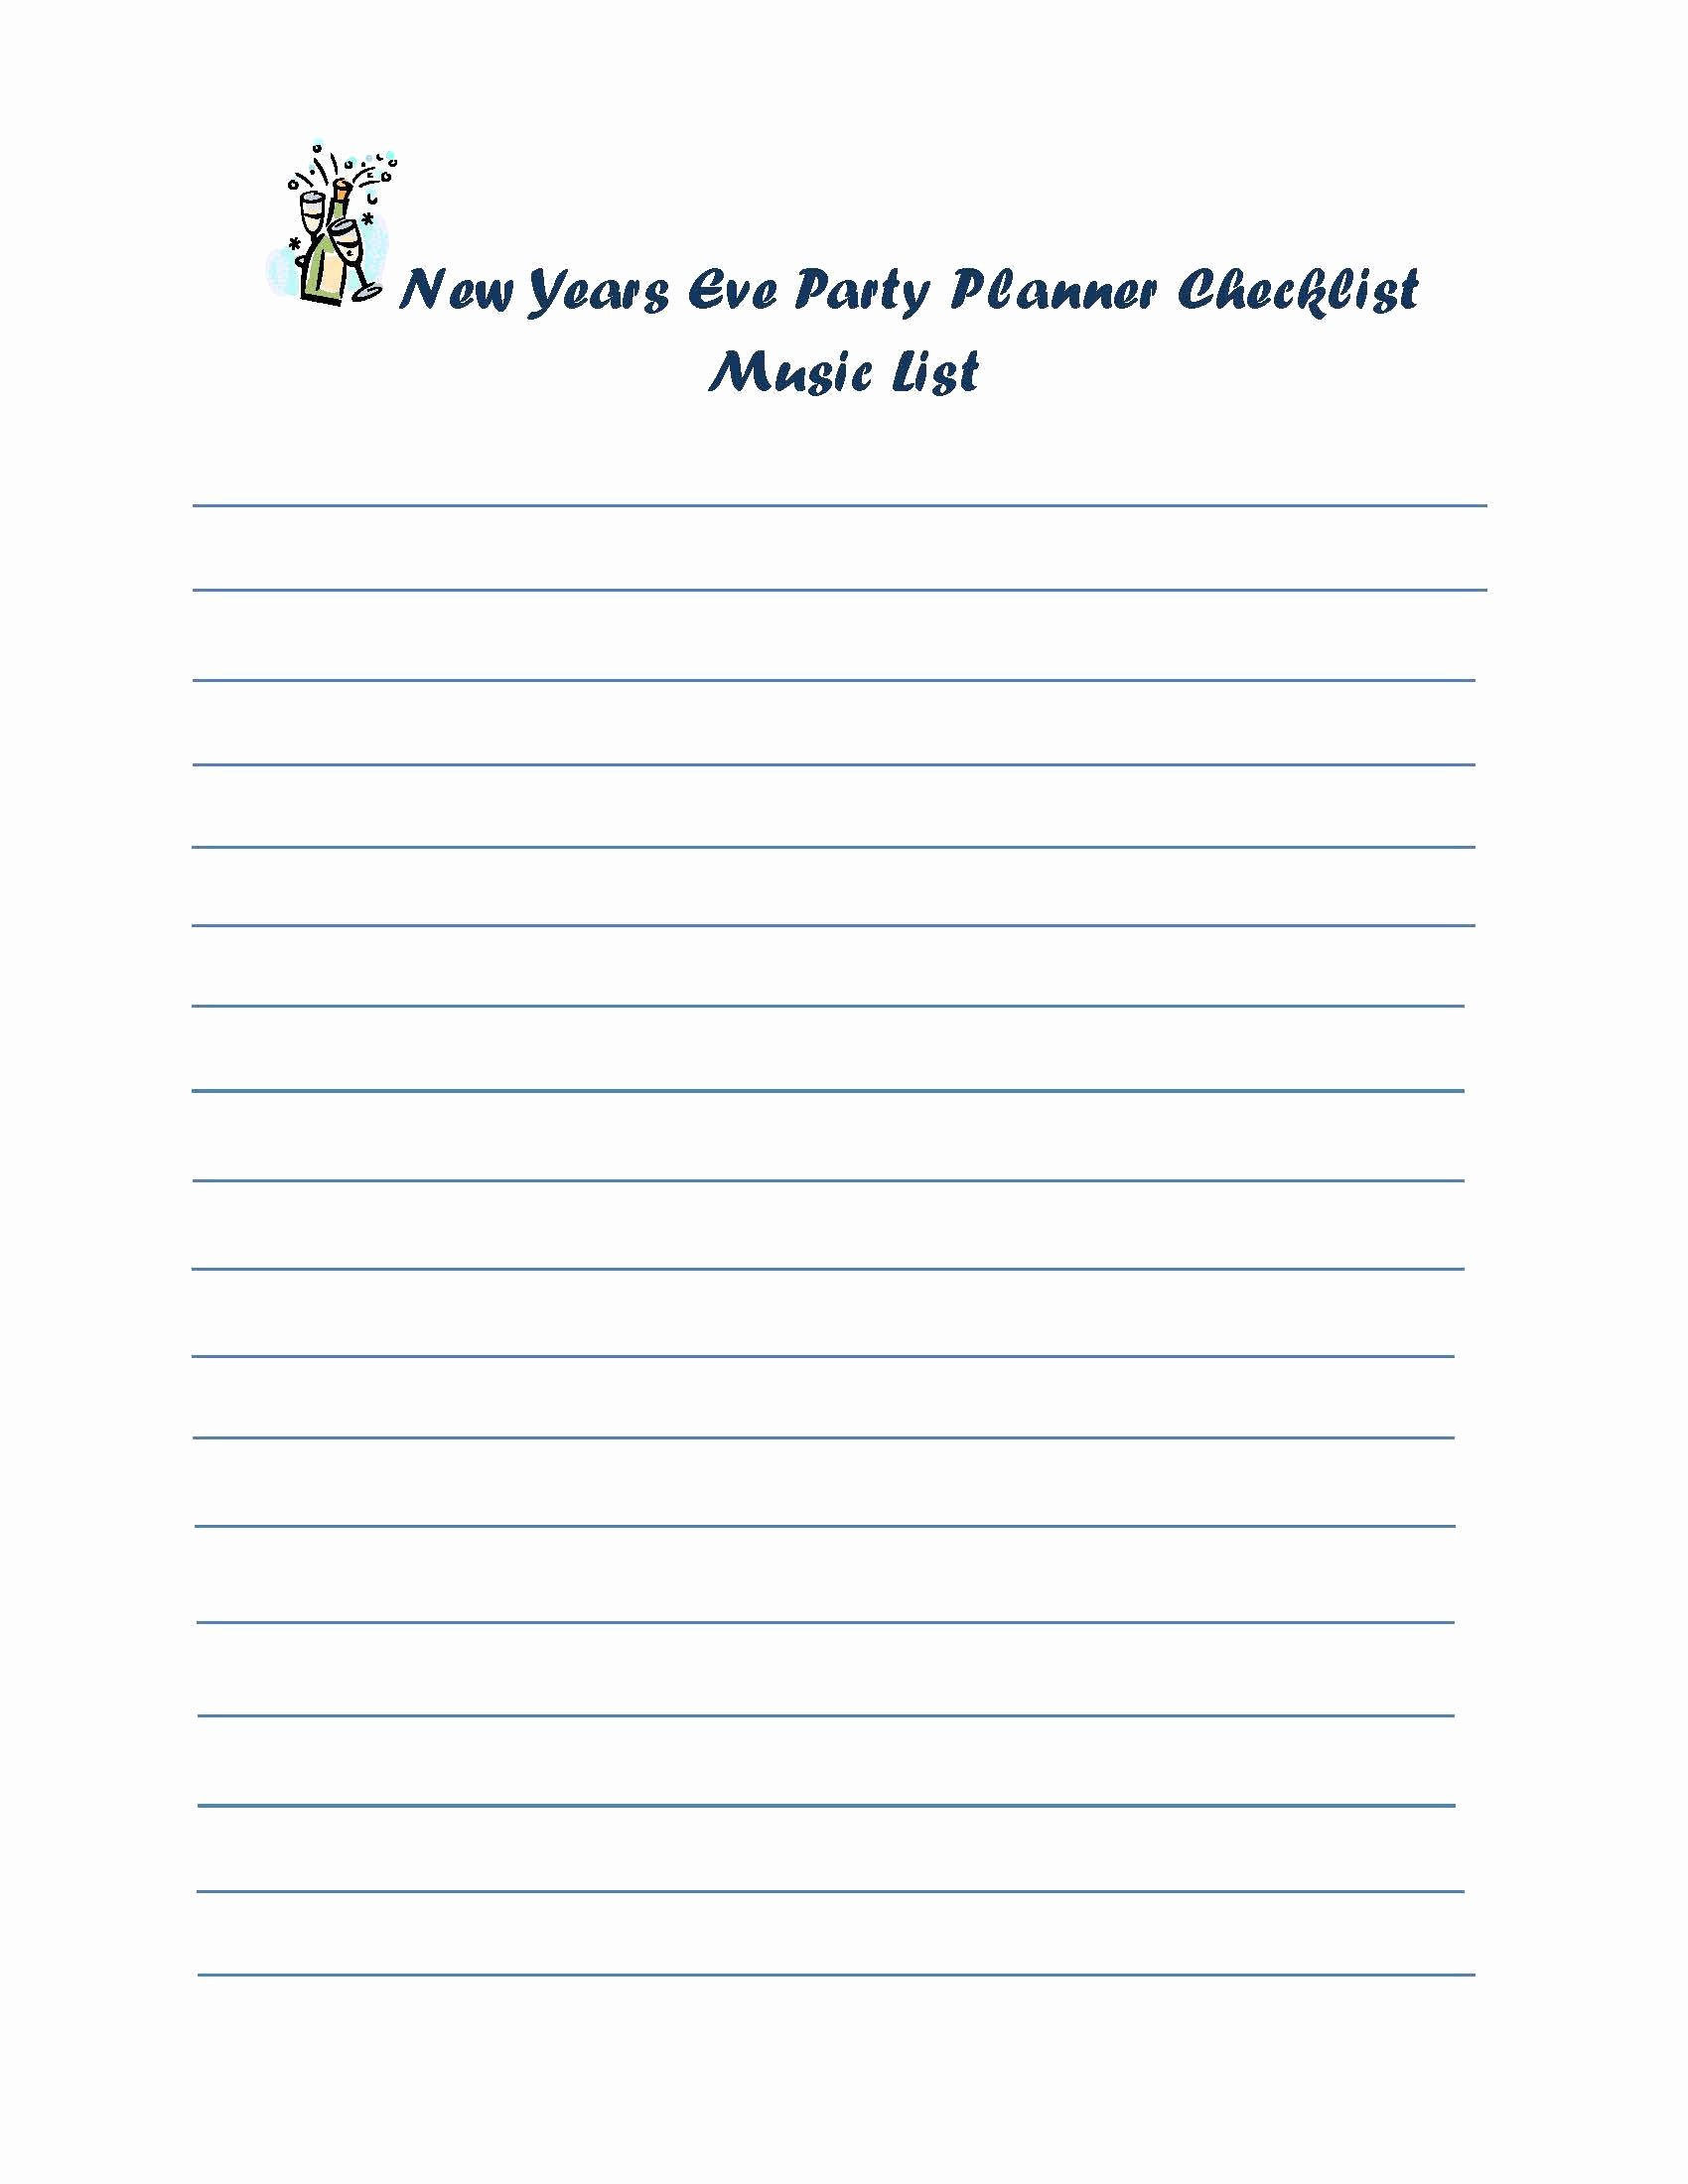 New Years Eve Party Checklist Beautiful New Years Eve Party Planner Checklist Music List